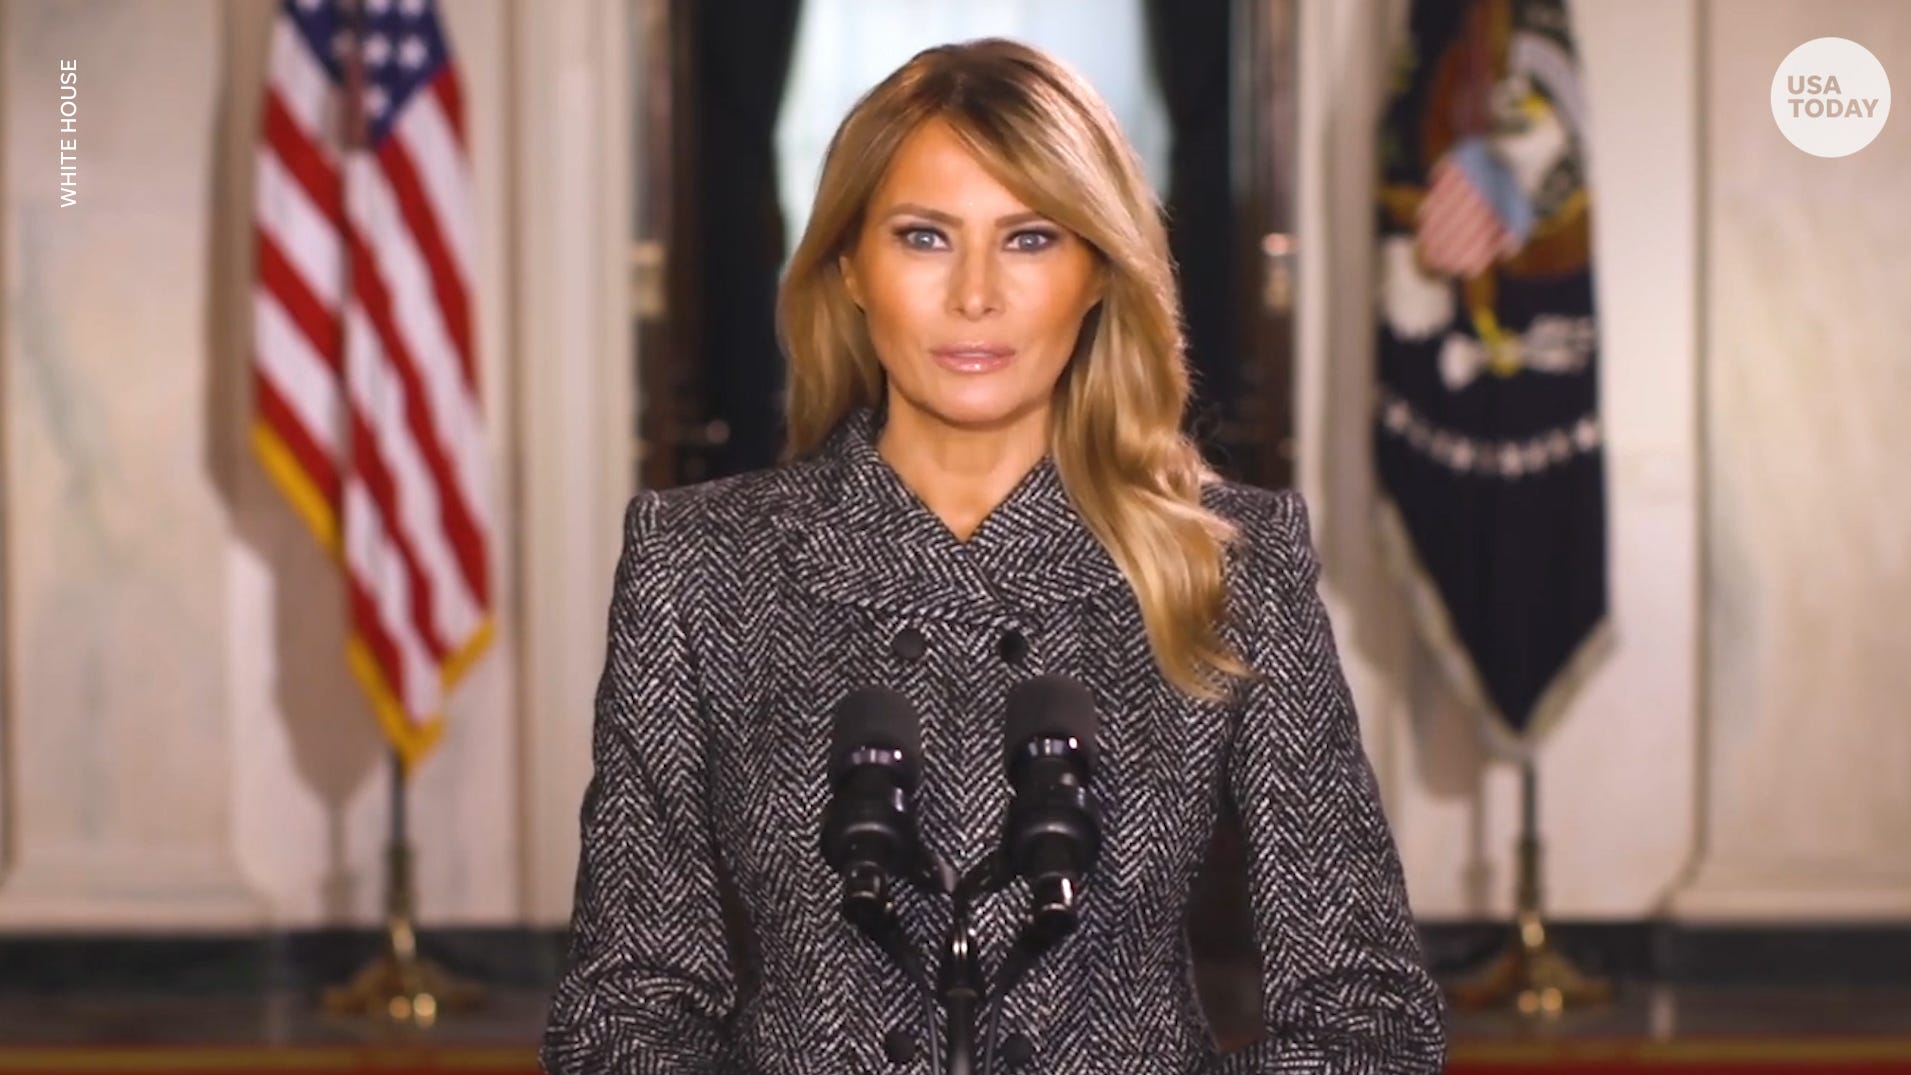 Melania Trump asks Americans to 'choose love' in farewell message